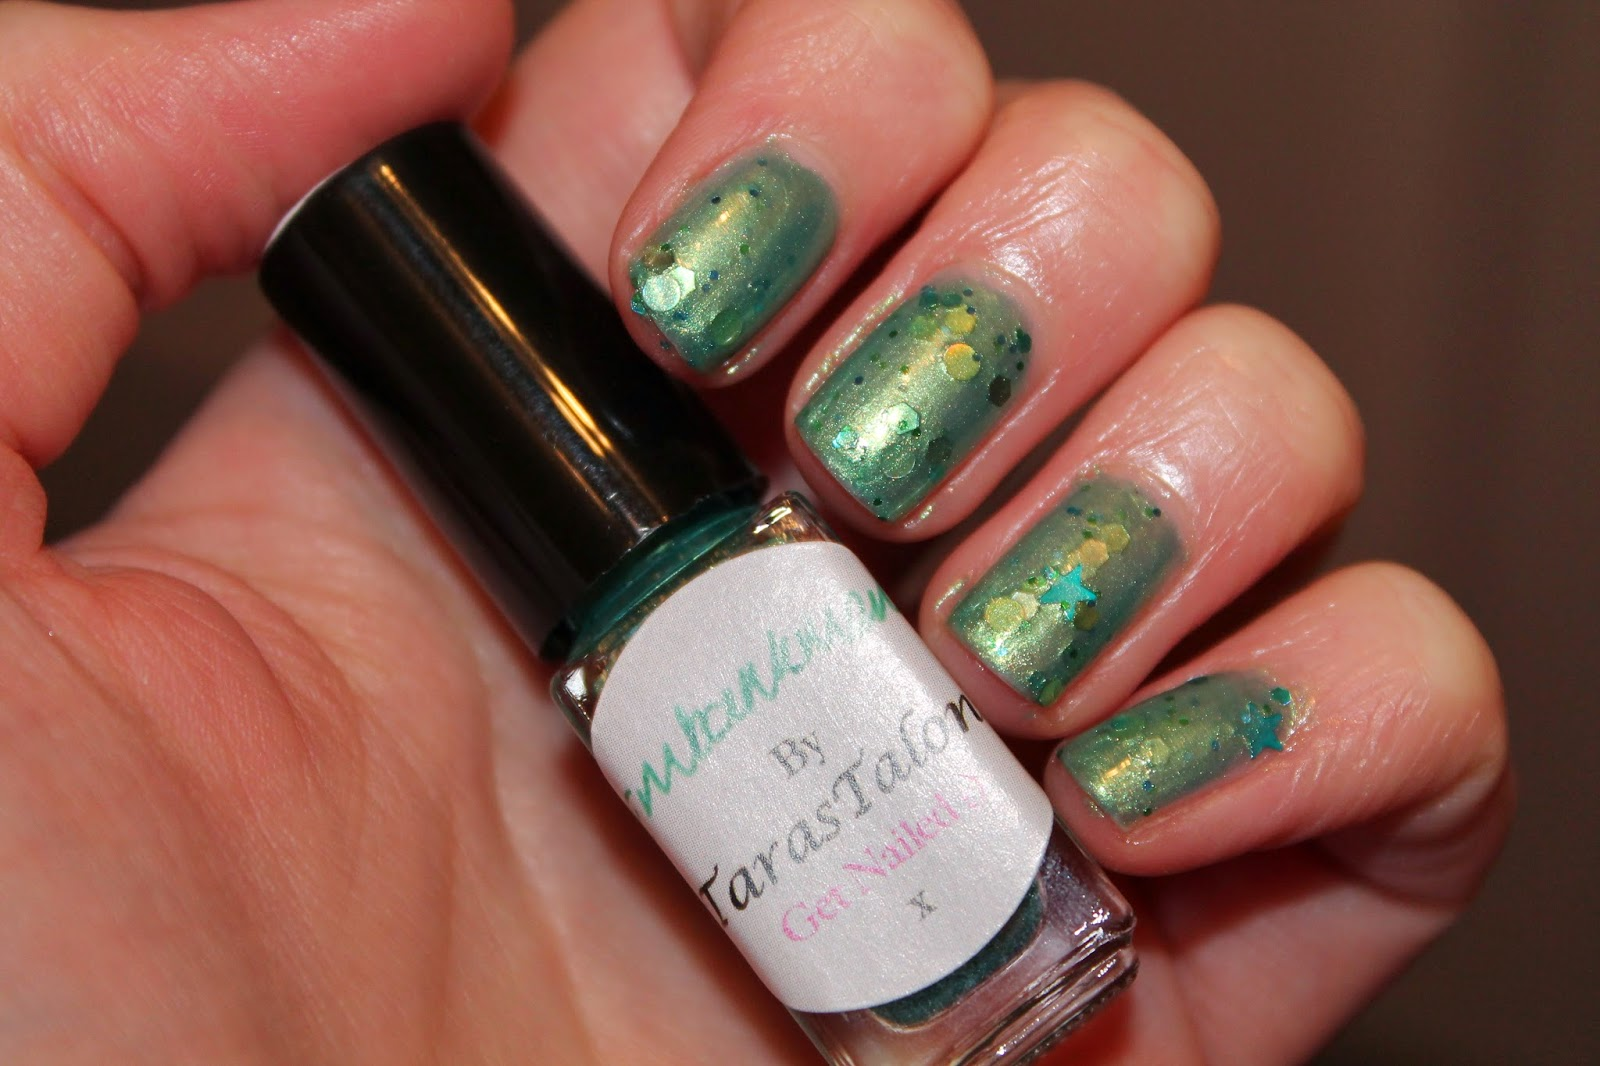 Tara's Talons Embankment Indie Nail Polish Swatch